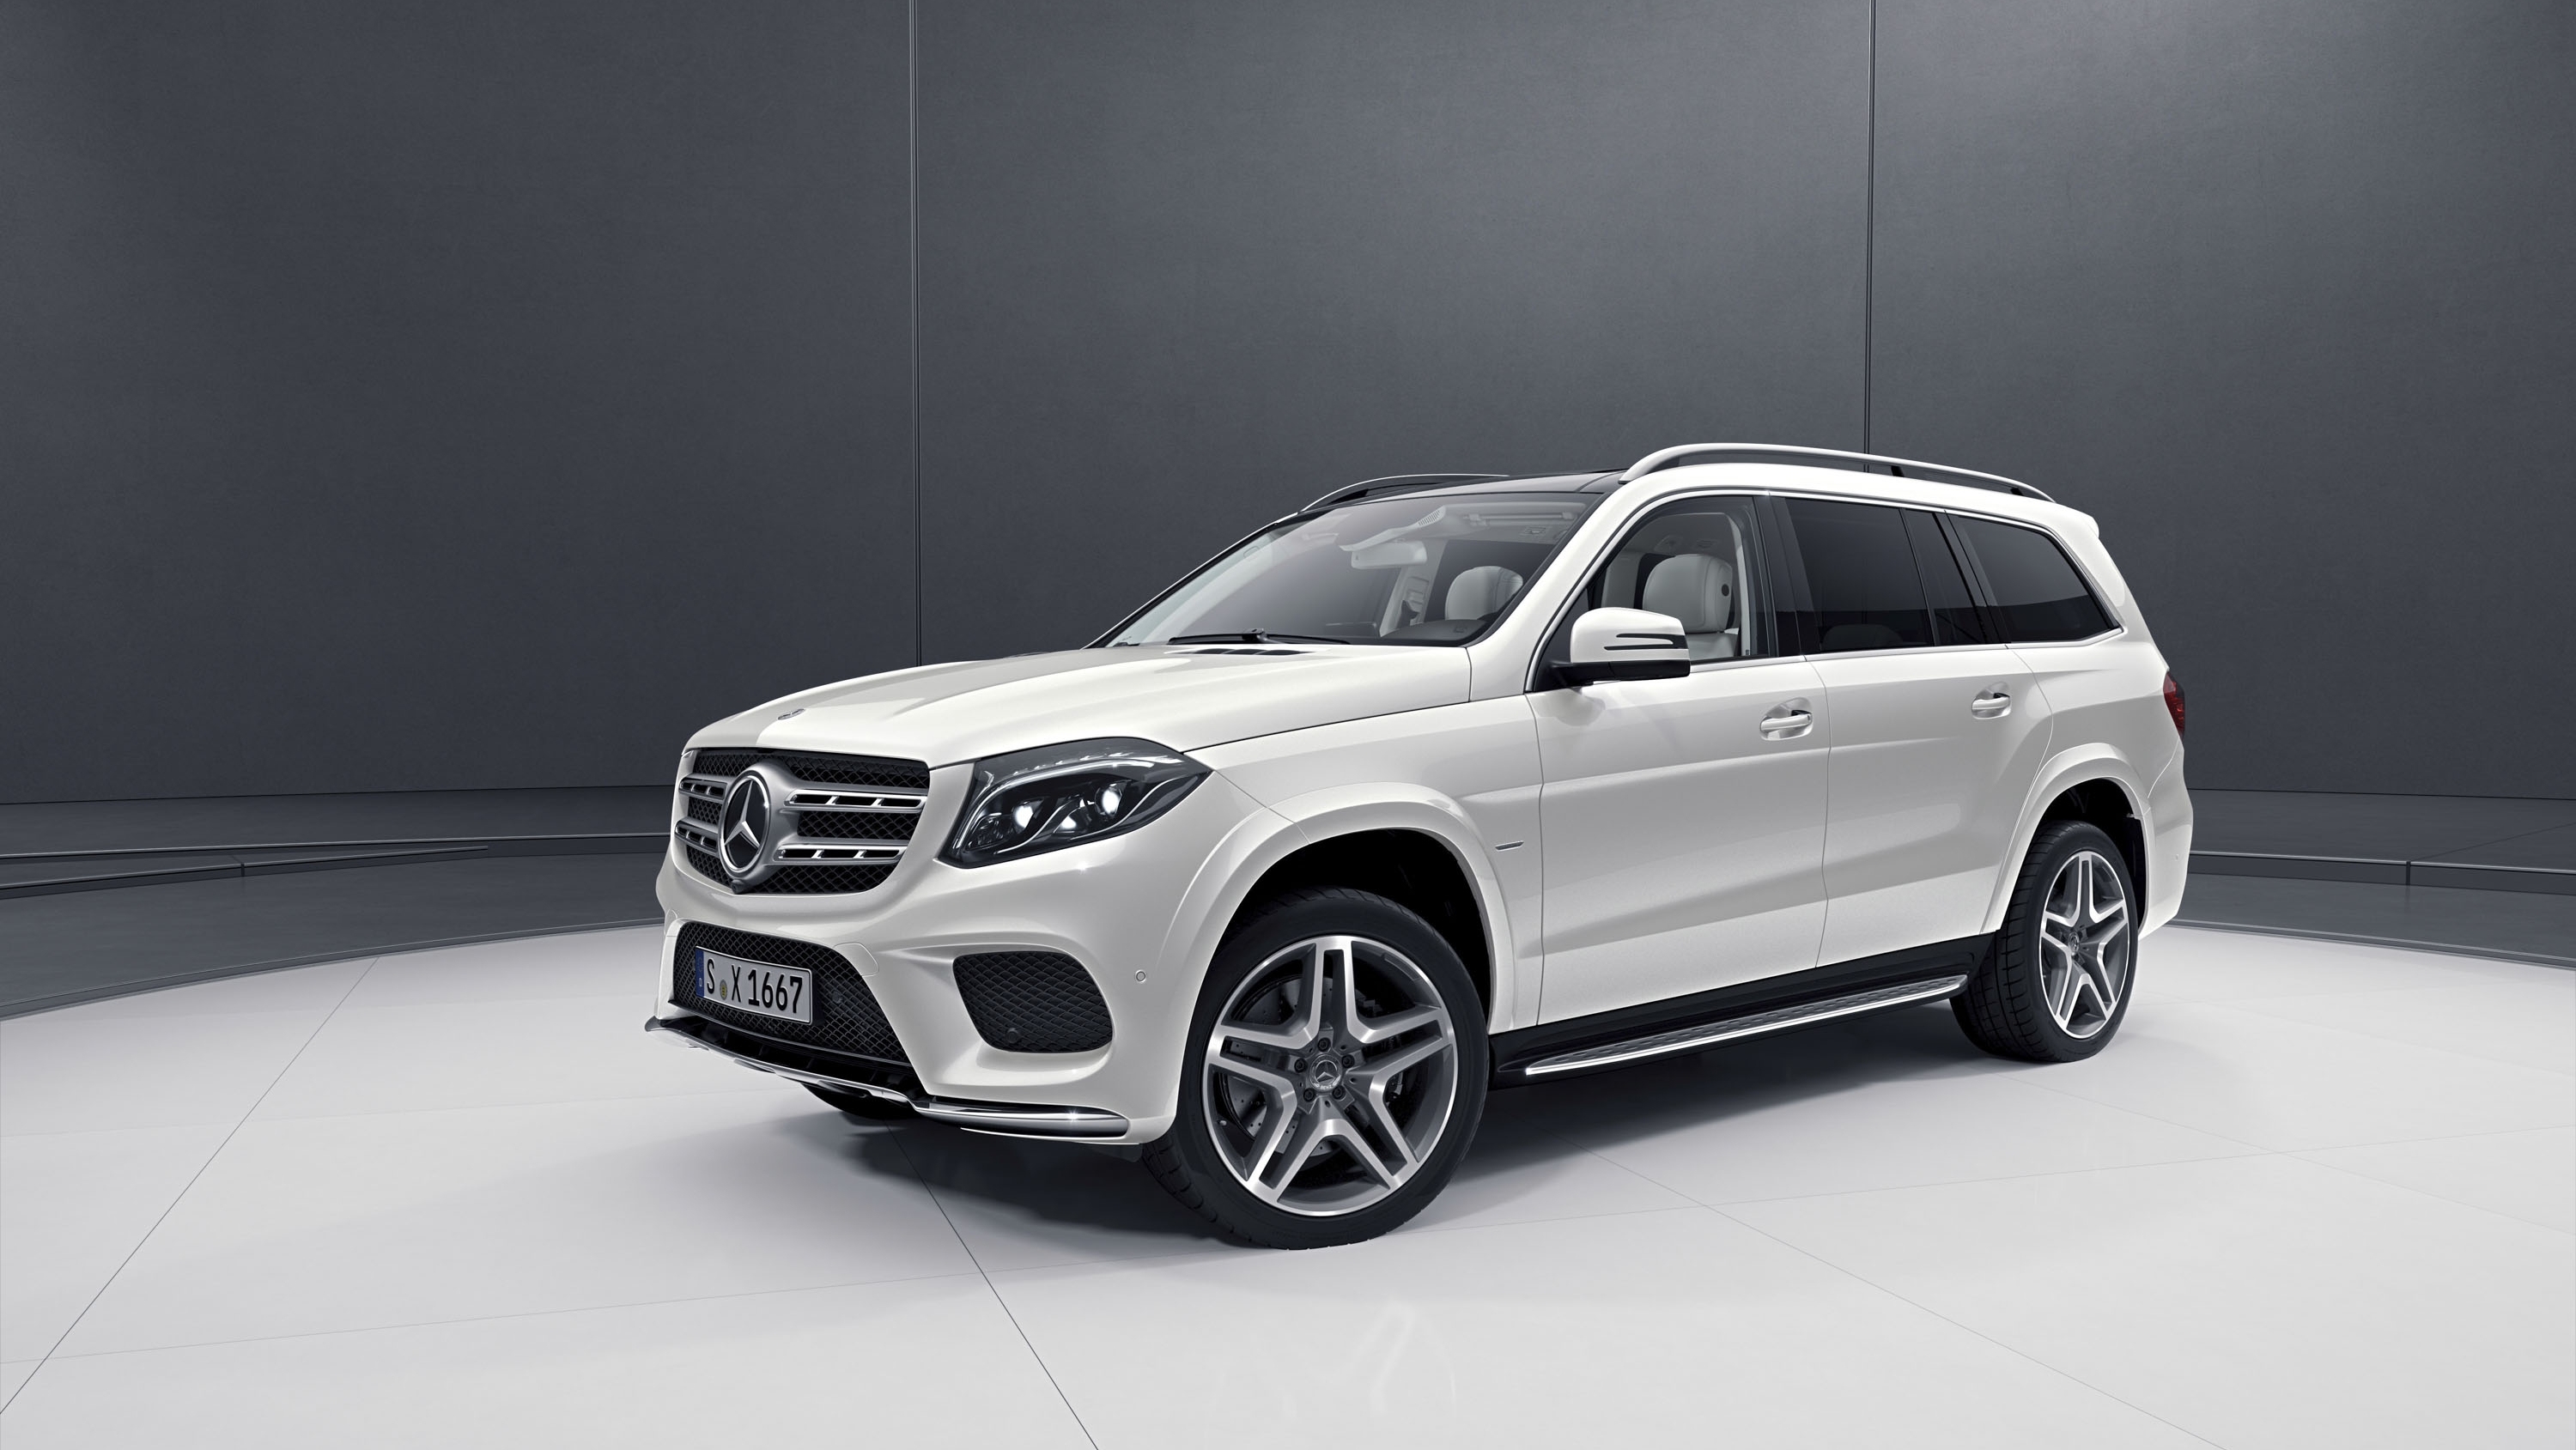 2018 Mercedes Benz Gls Grand Edition Pictures Photos Wallpapers